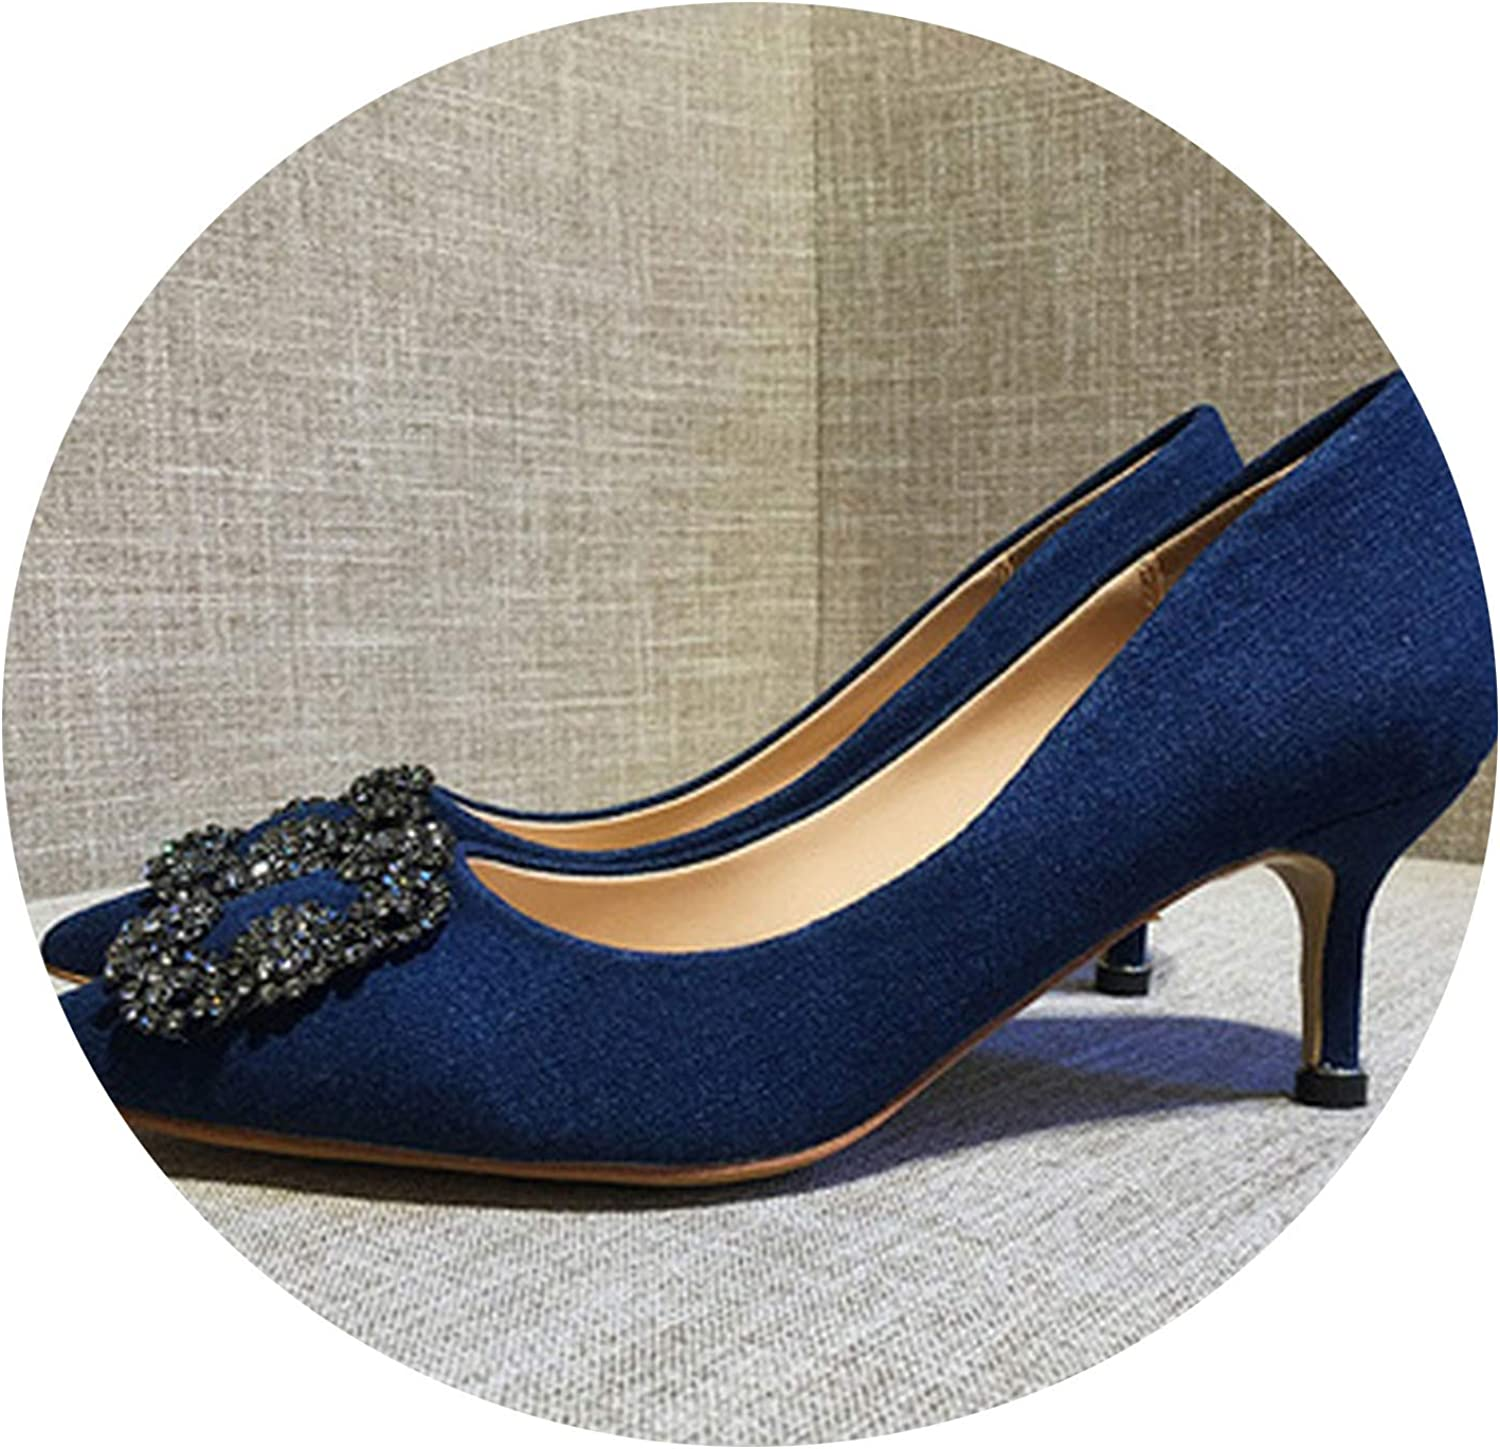 Crunchy Candy Sexy Lady Pointed Toe Diamond Shining Square Button Buckle Pumps Elegant High Heel 6cm